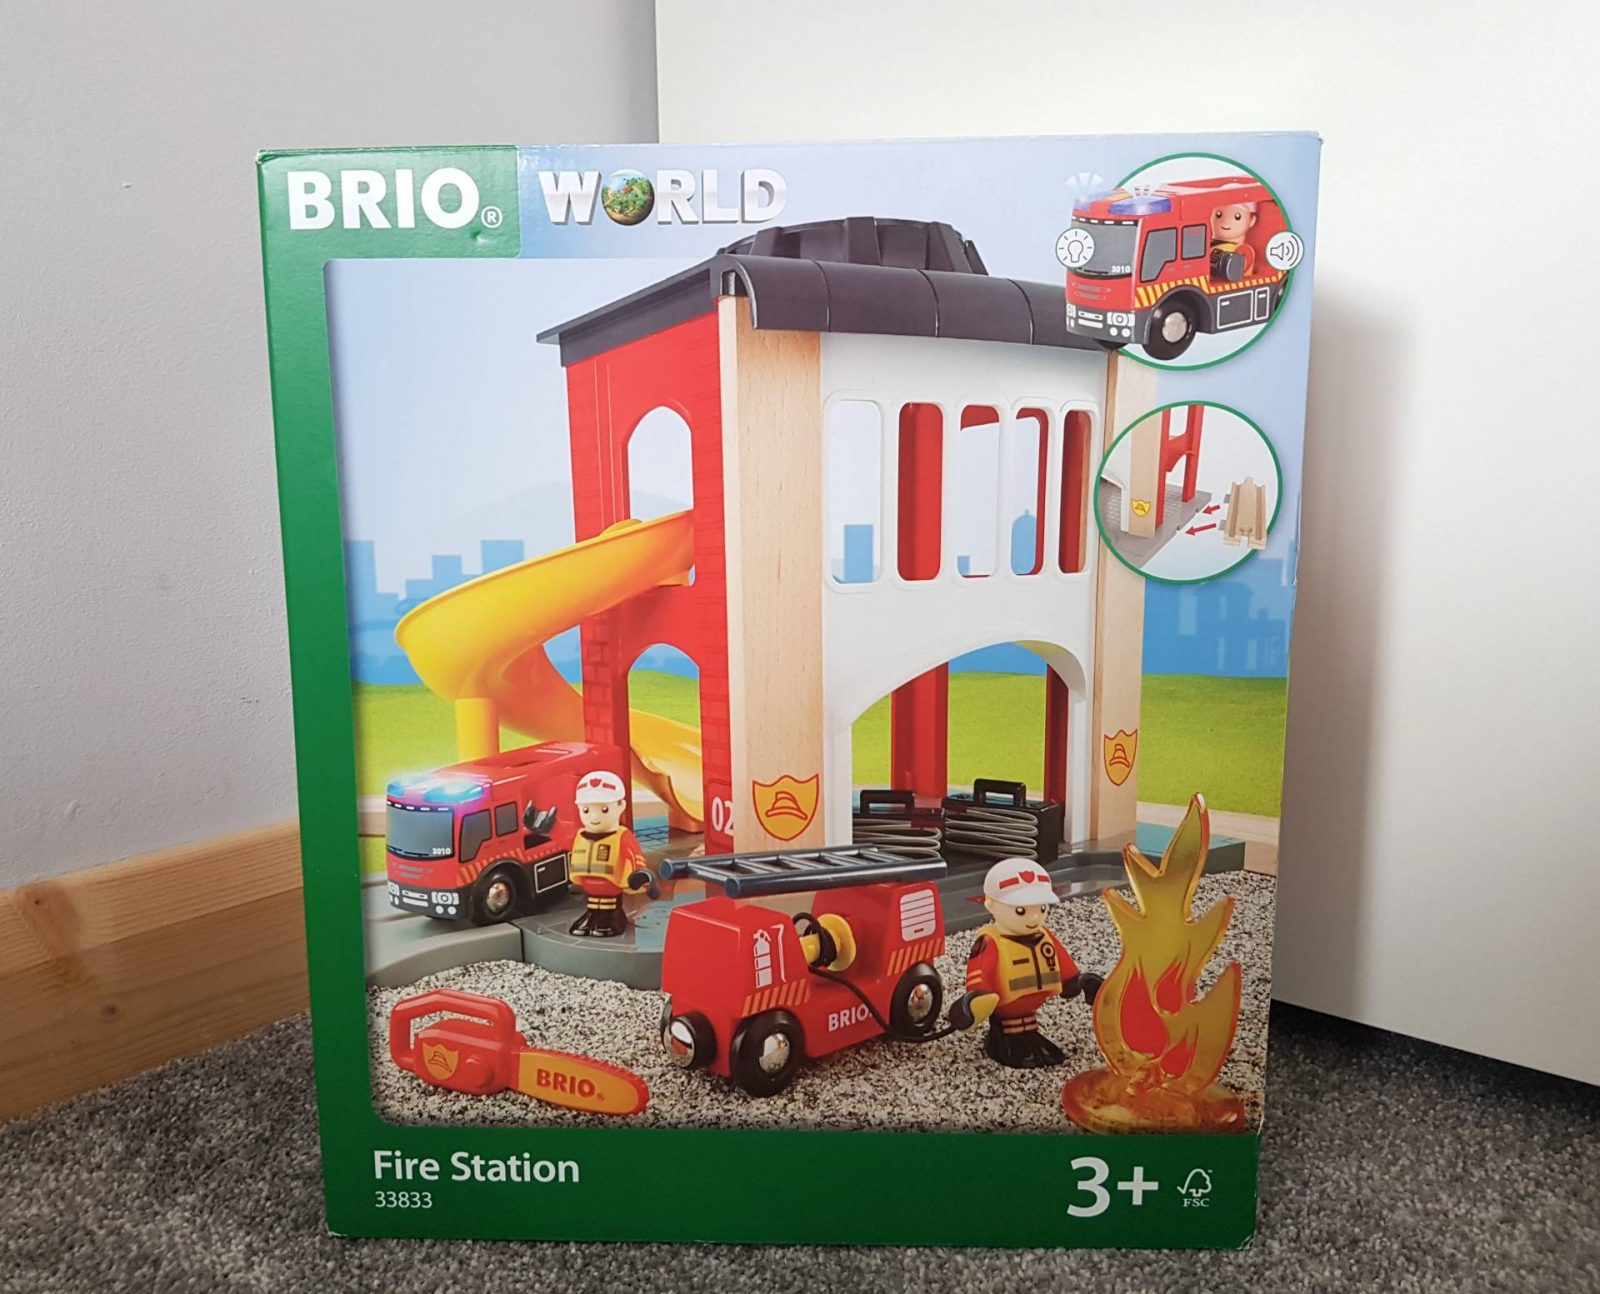 BRIO Fire Station review